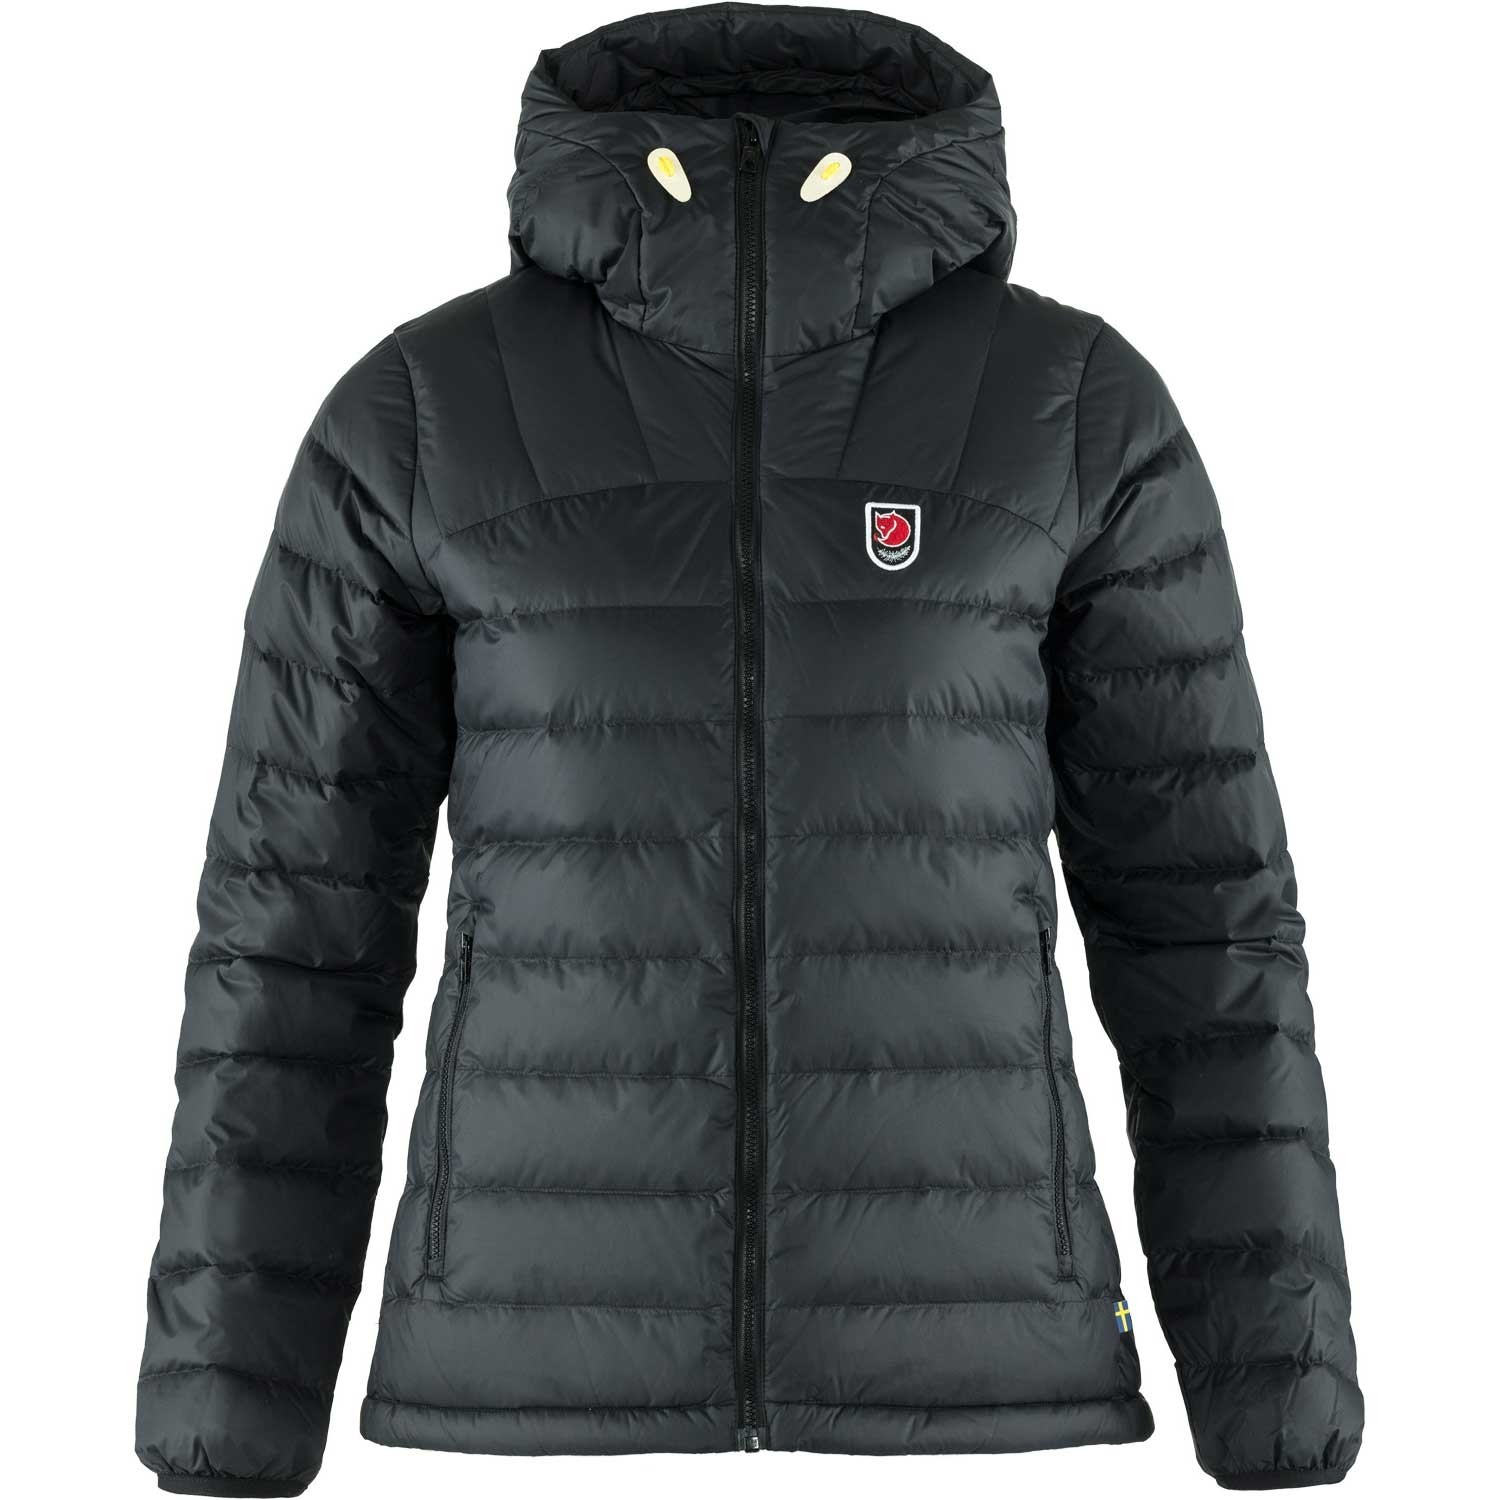 Fjällräven Expedition Pack Down Hoodie - Women's - Black